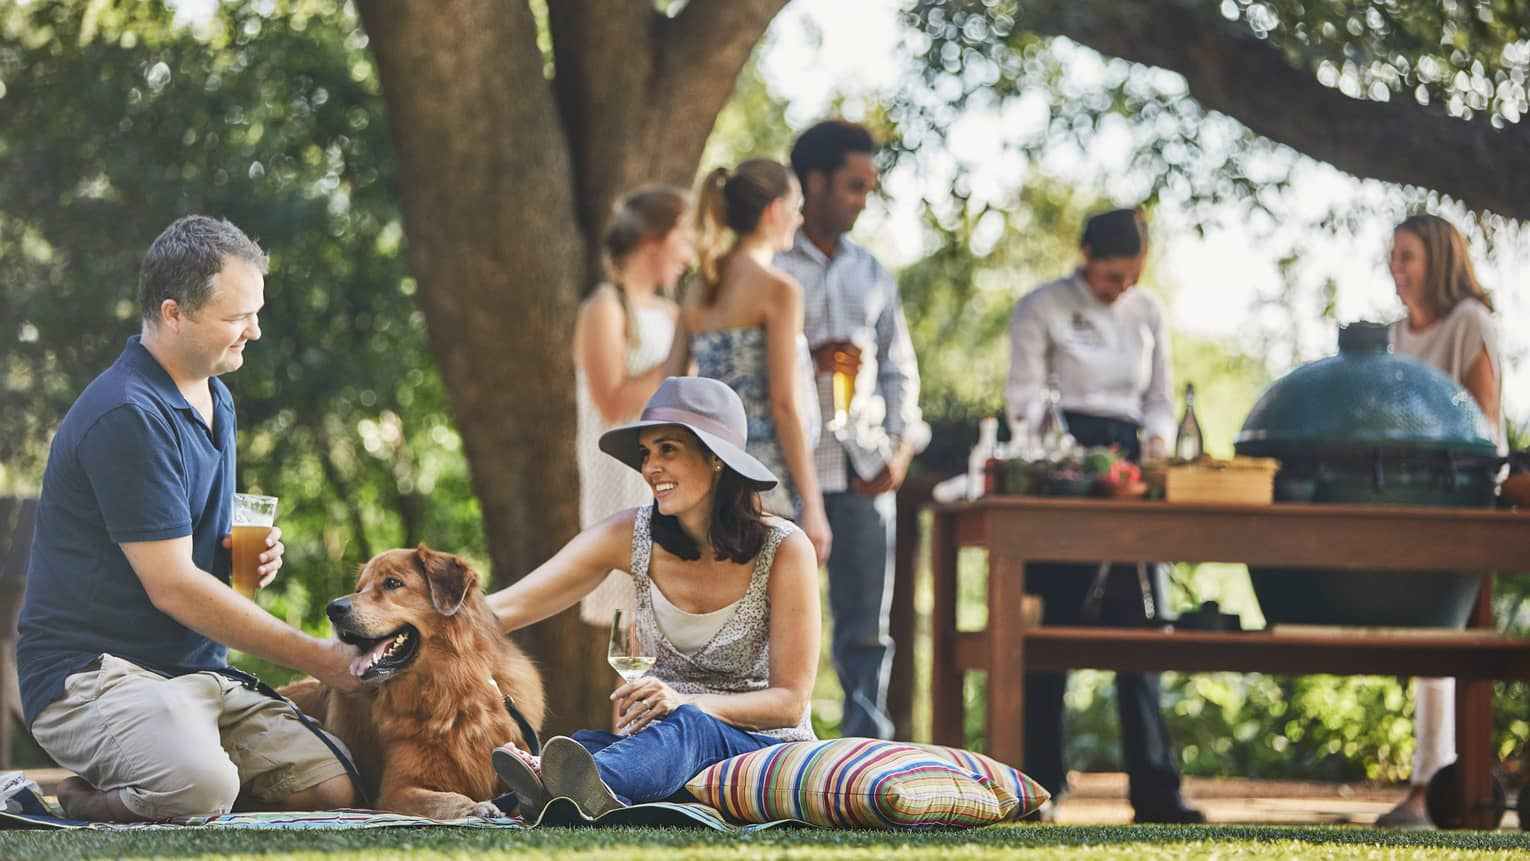 Man with beer, woman with wine sit on lawn, pet large dog, people around barbecue in background